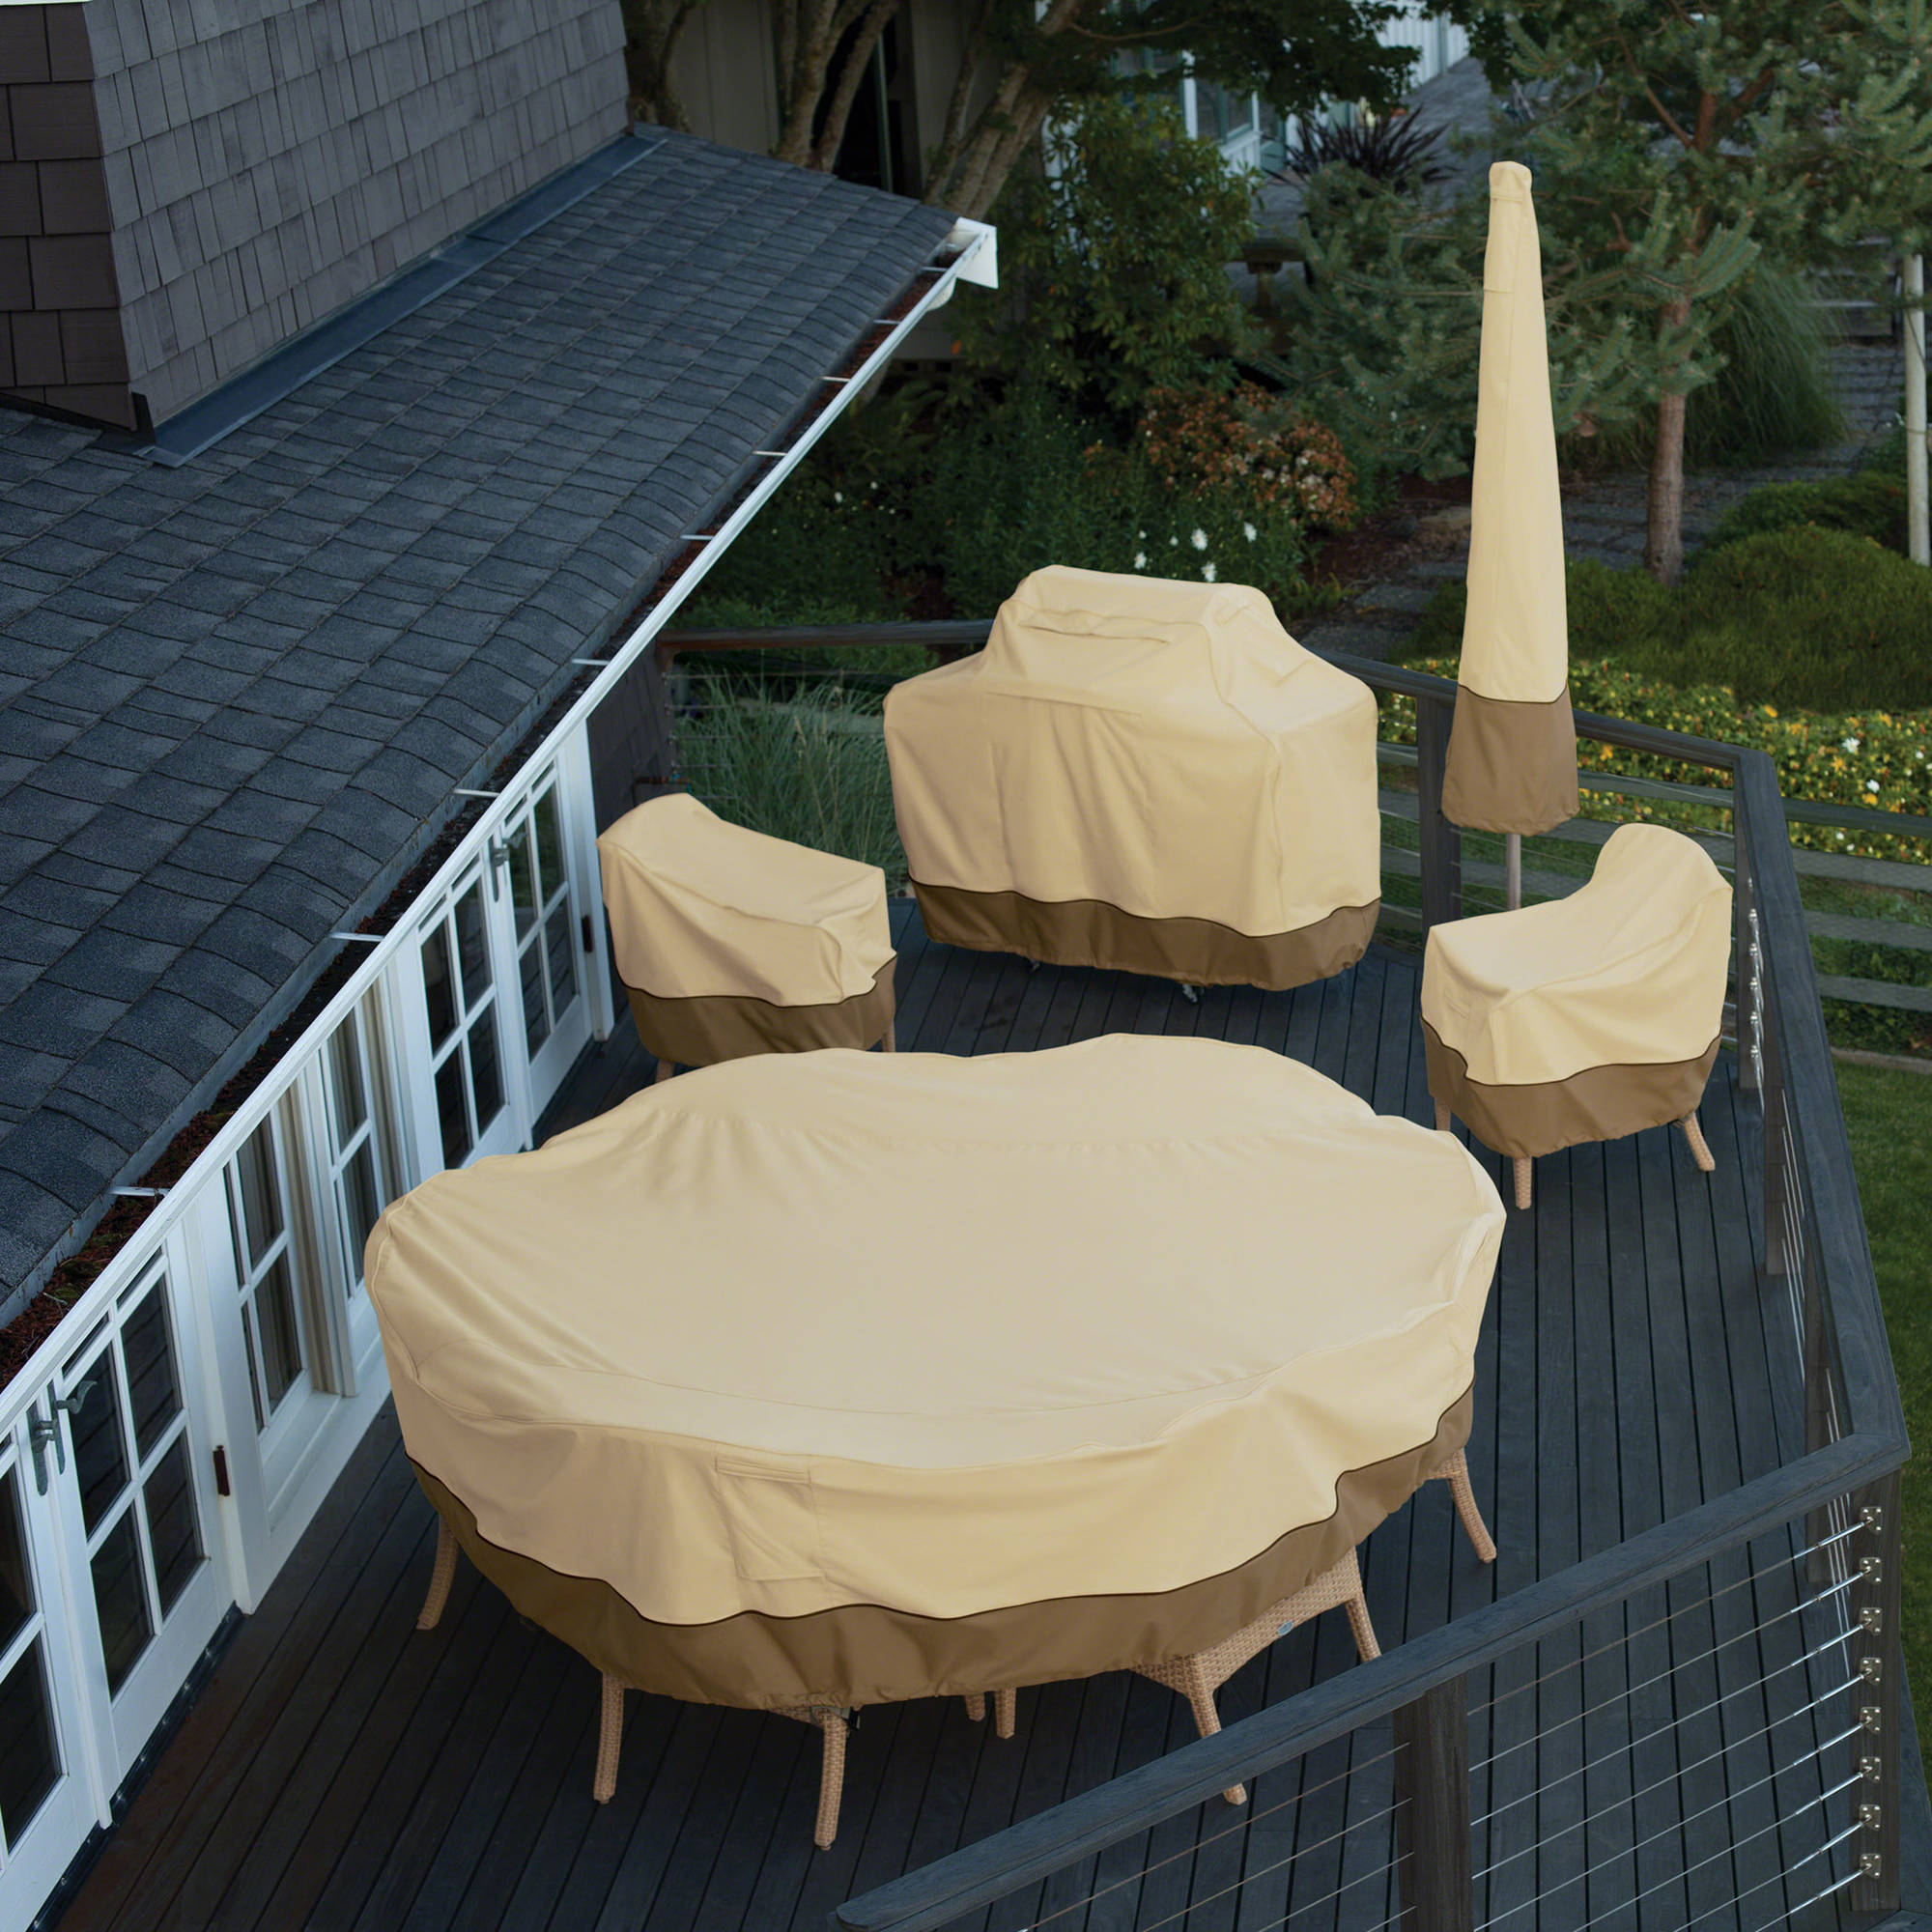 Classic Accessories Veranda Round Patio Table U0026 Chair Set Cover   Durable  And Water Resistant Outdoor Furniture Cover, Large (78942)   Walmart.com